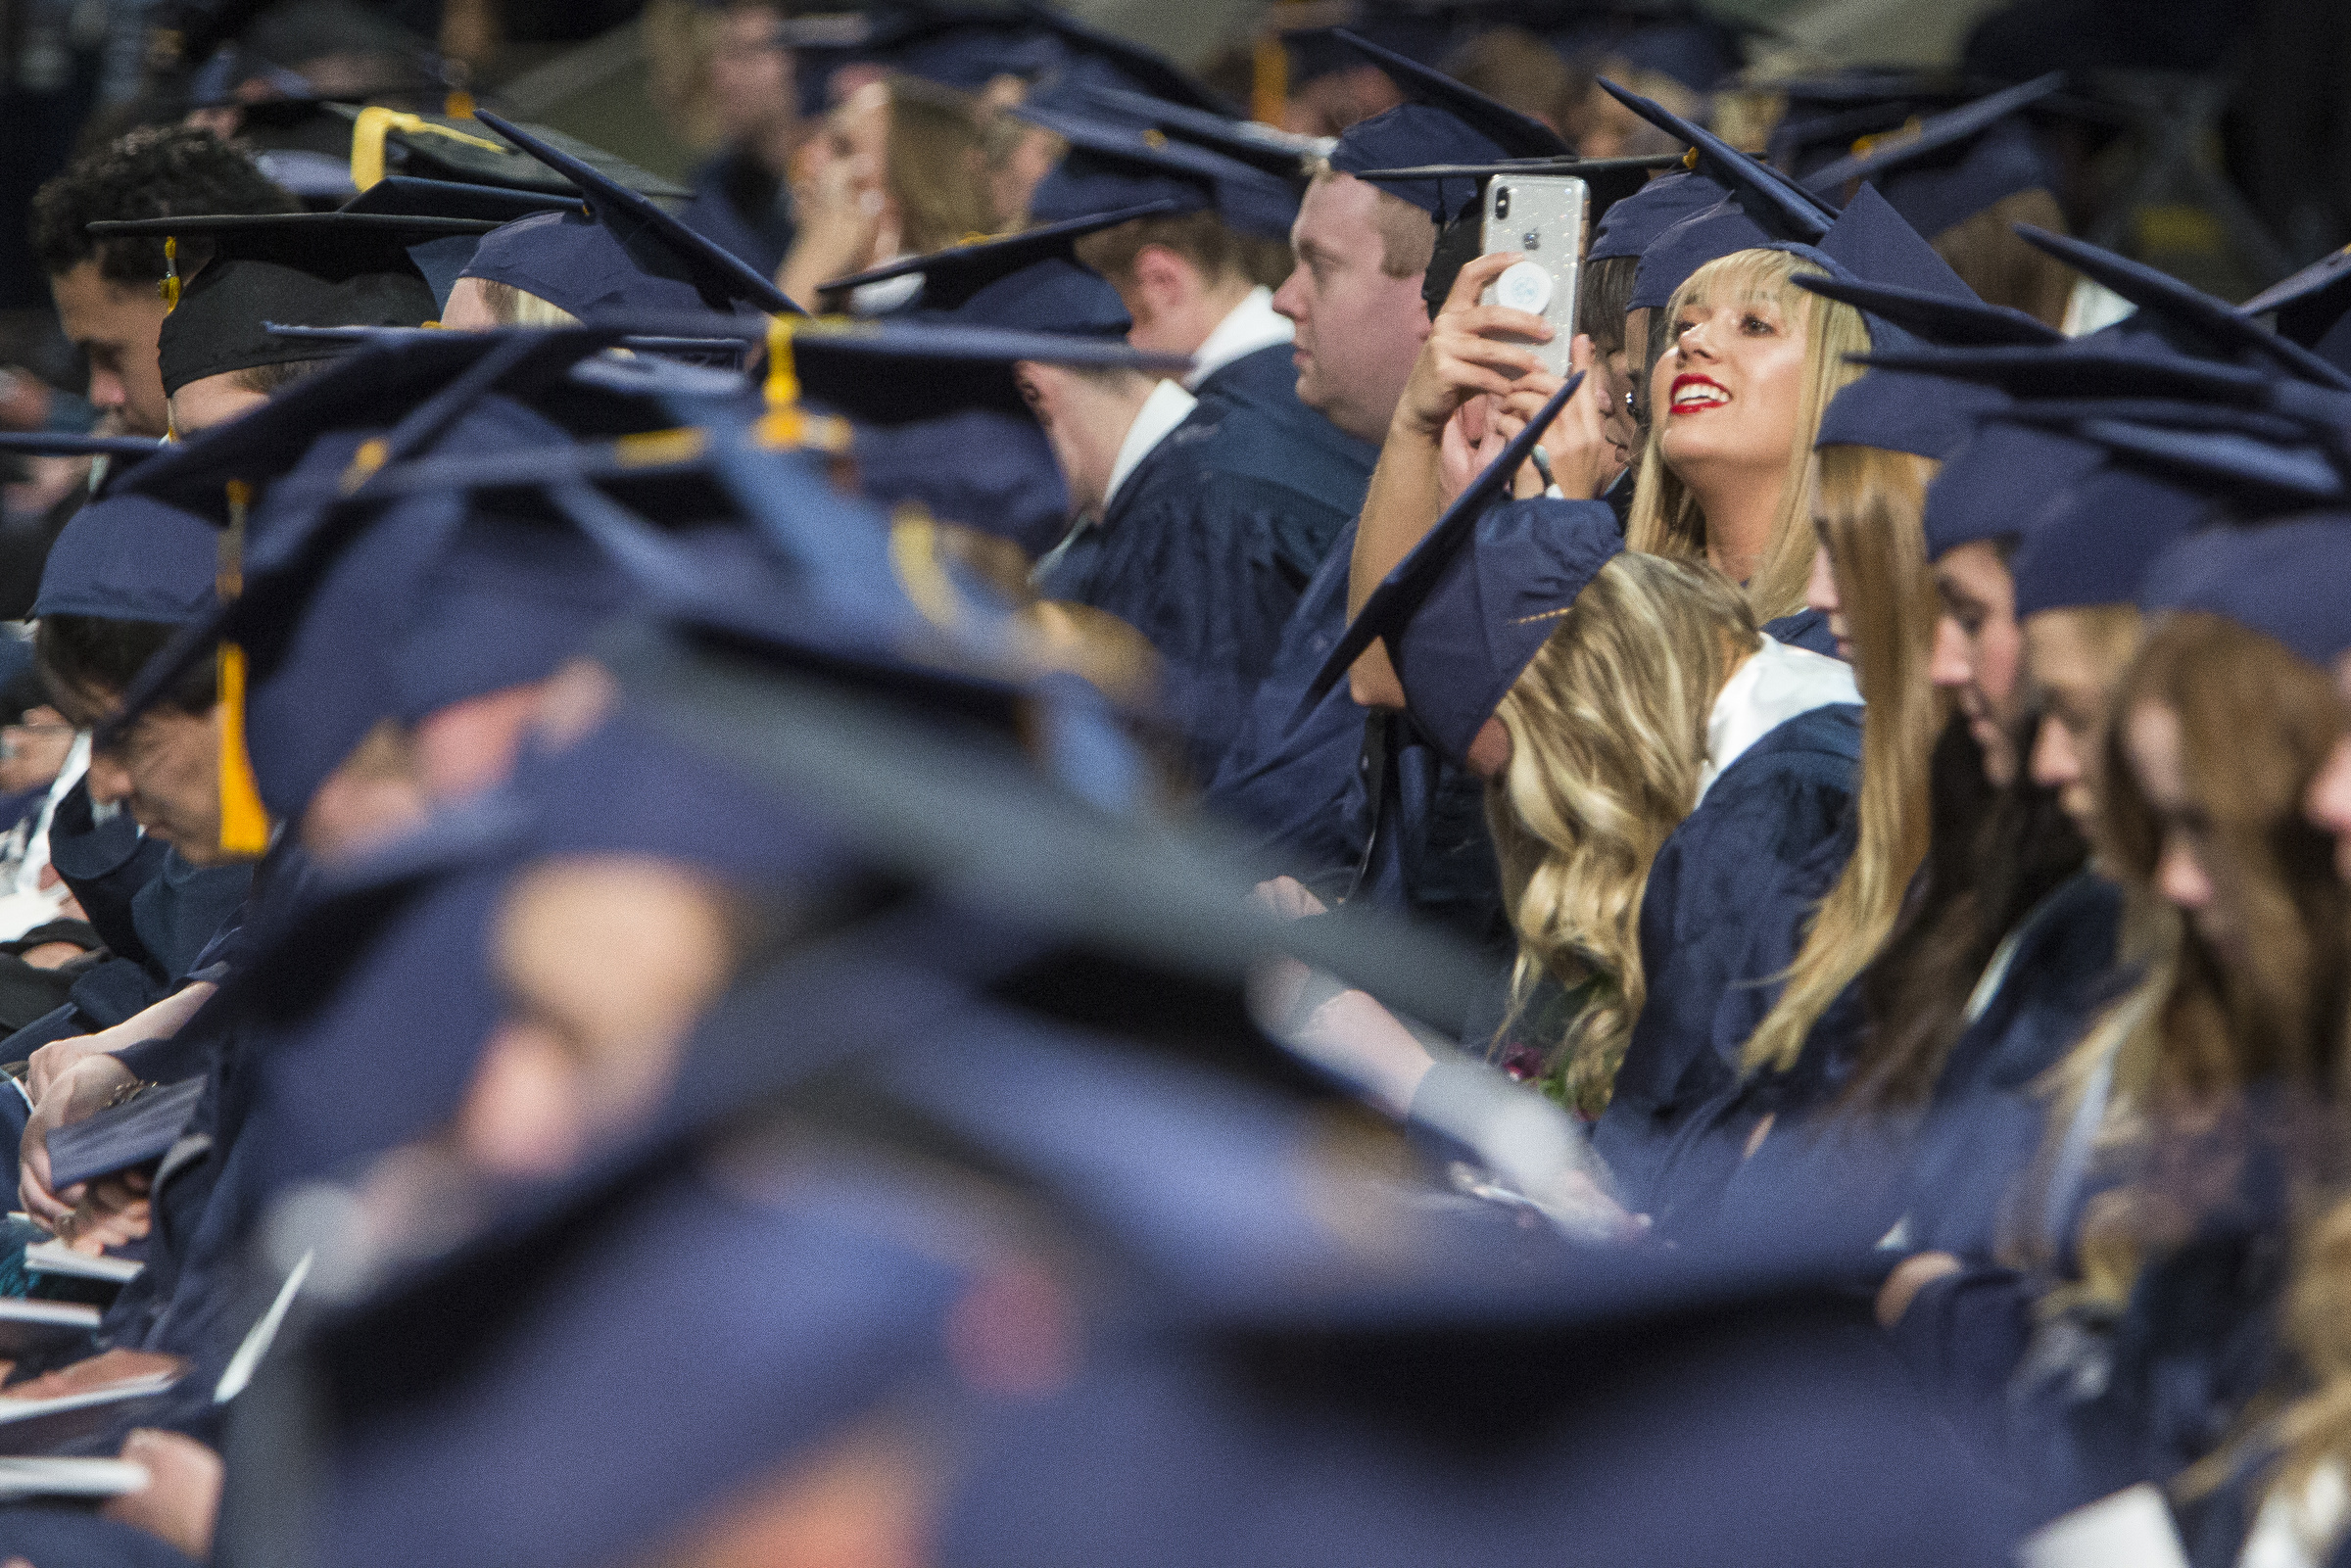 BYU graduate Chanel Kostich, of Rolling Hills Estates, California, uses her cell phone while attending Brigham Young University's commencement ceremony in the Marriott Center on Thursday, April 26, 2018, in Provo. BYU is awarding nearly 6,300 degrees to graduates this week.